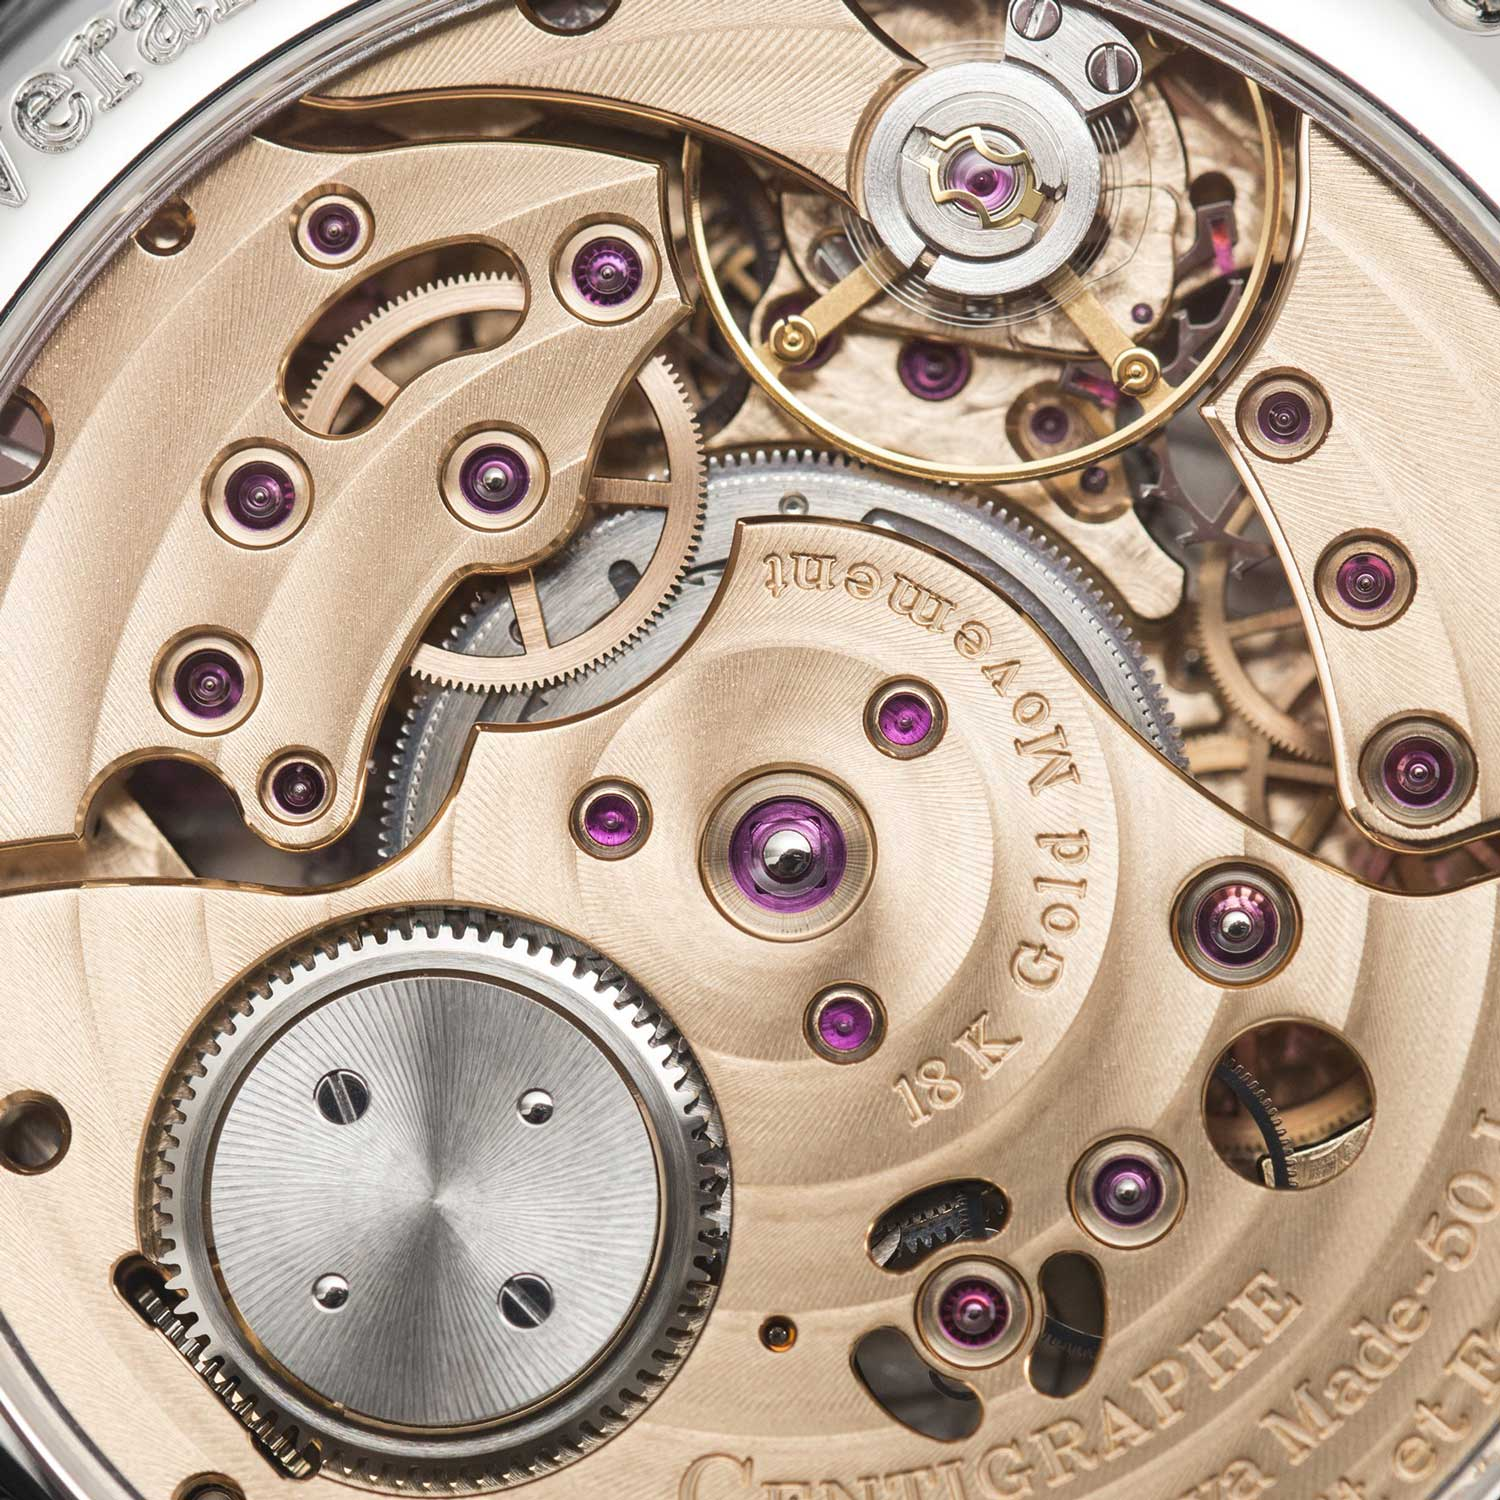 The highly innovative clutch-less cal. 1506 in the Centigraphe Souverain with a mainspring barrel that unwinds in two separate directions